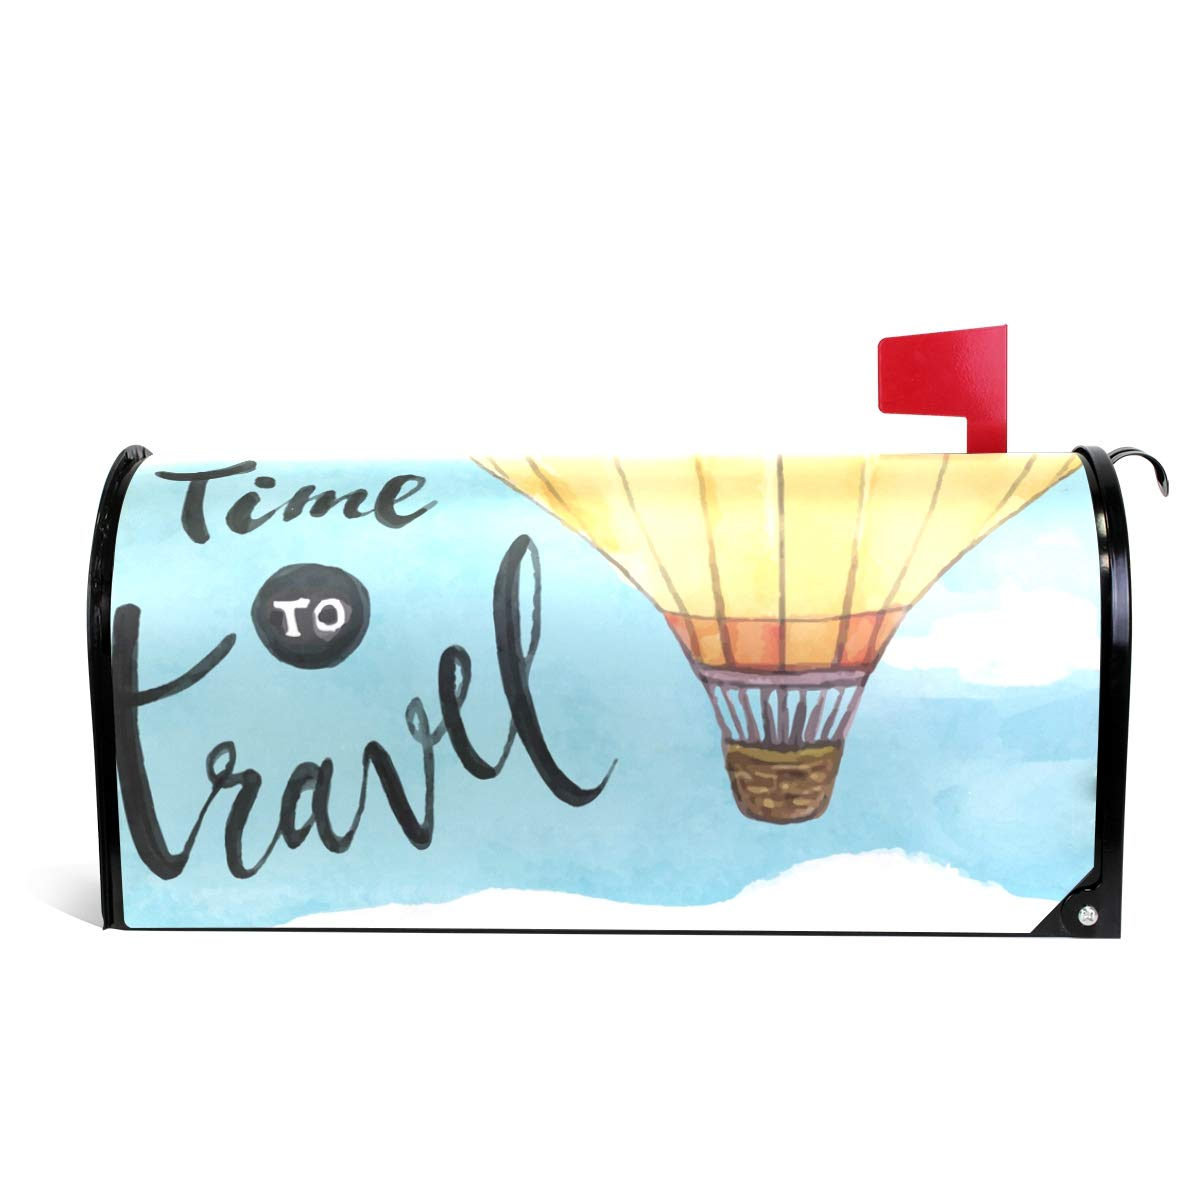 LORVIES Hot Air Balloon Magnetic Mailbox Cover Oversized 25.5 x 18 Inch